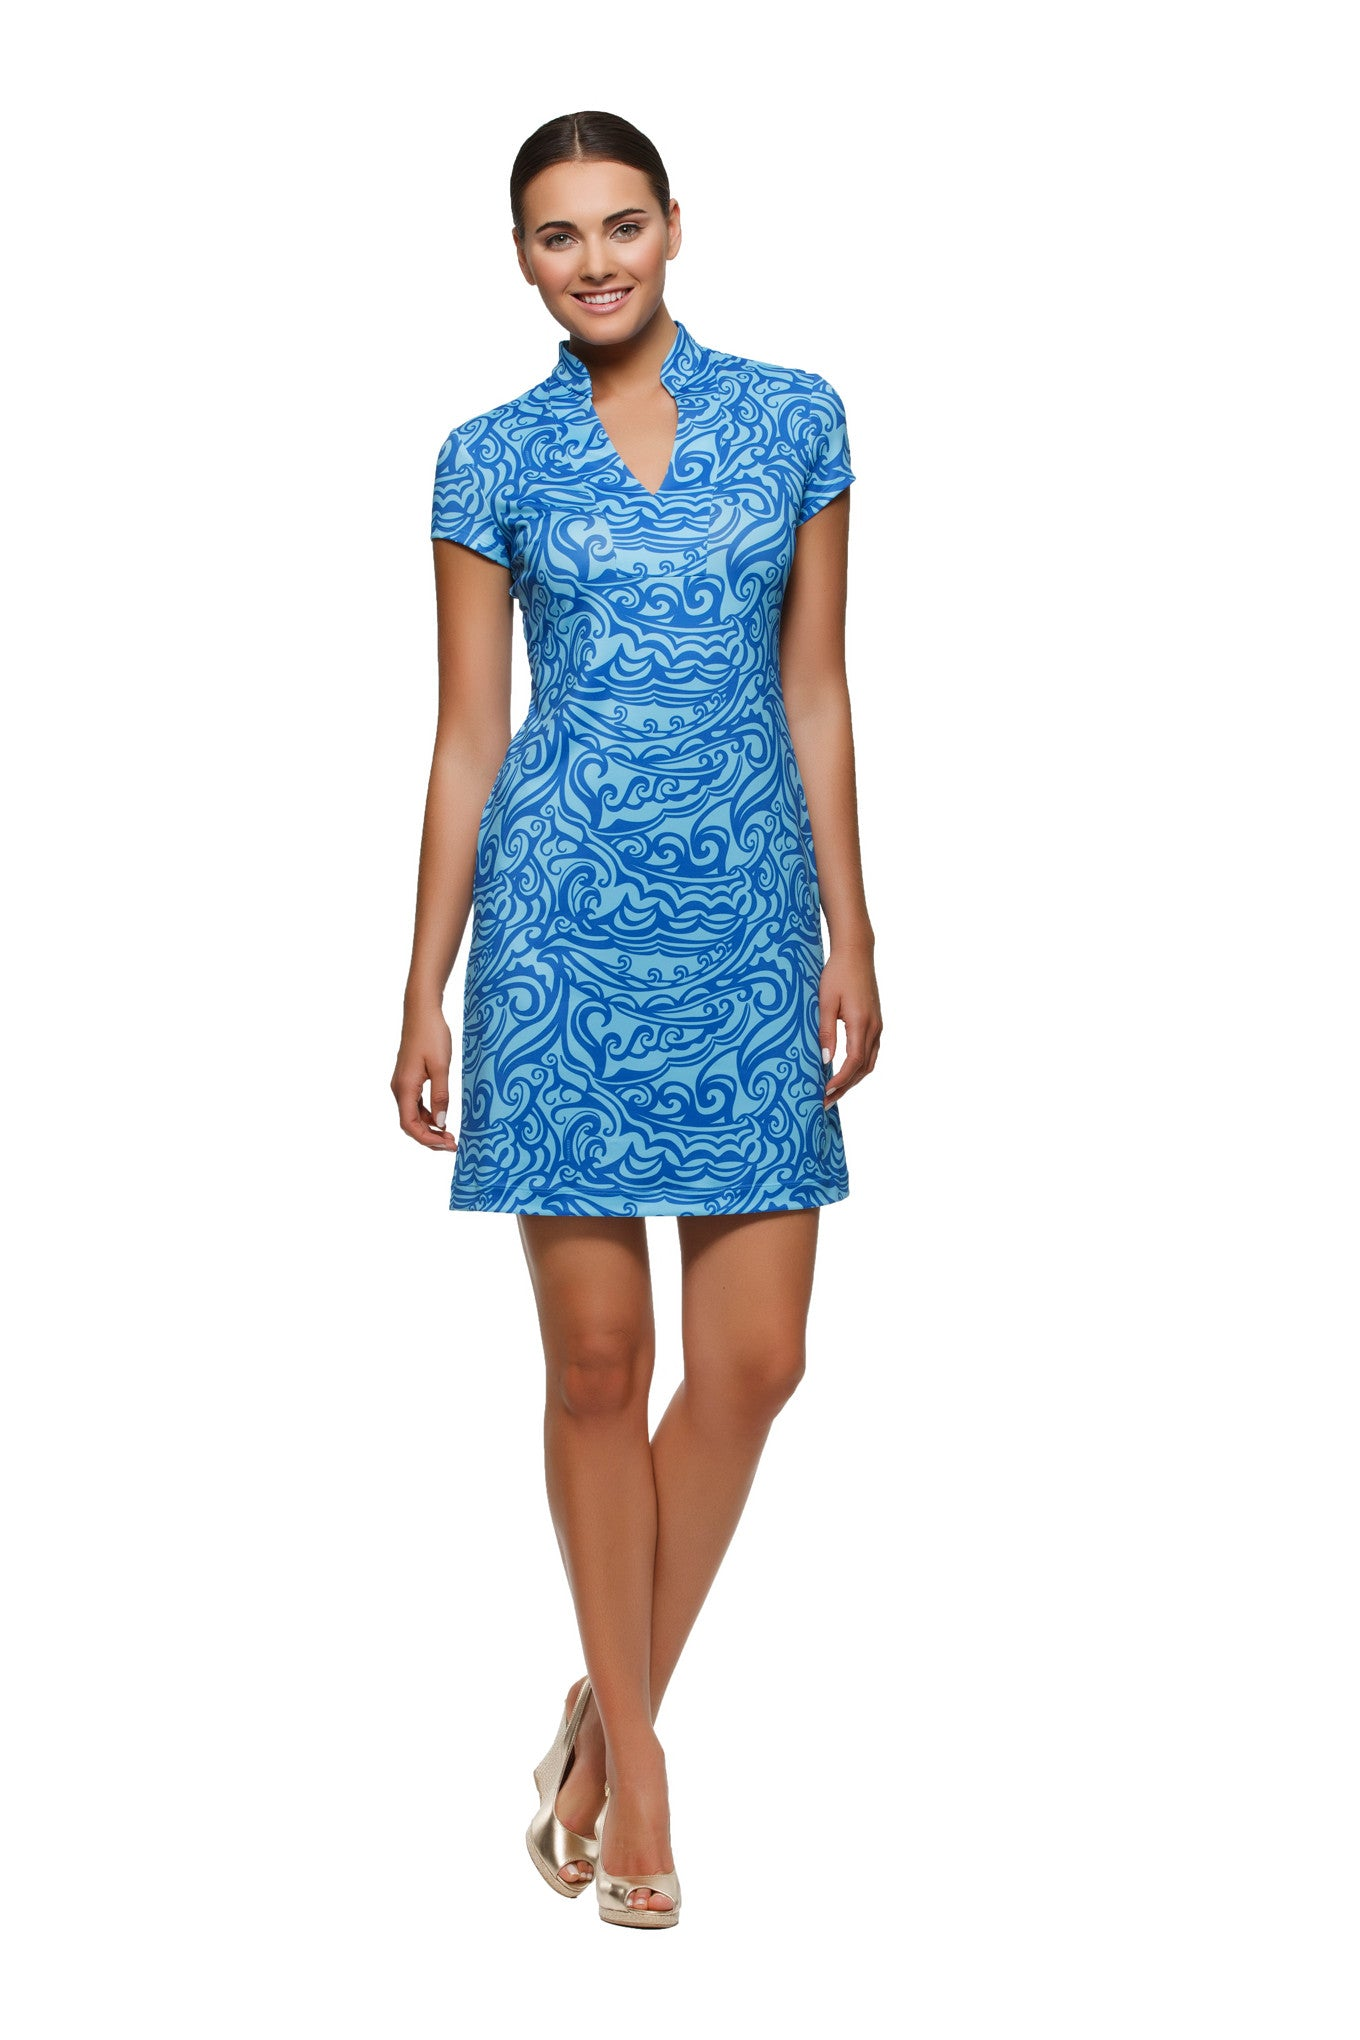 Parker Dress in Blue and Aqua Surf - Rulon Reed